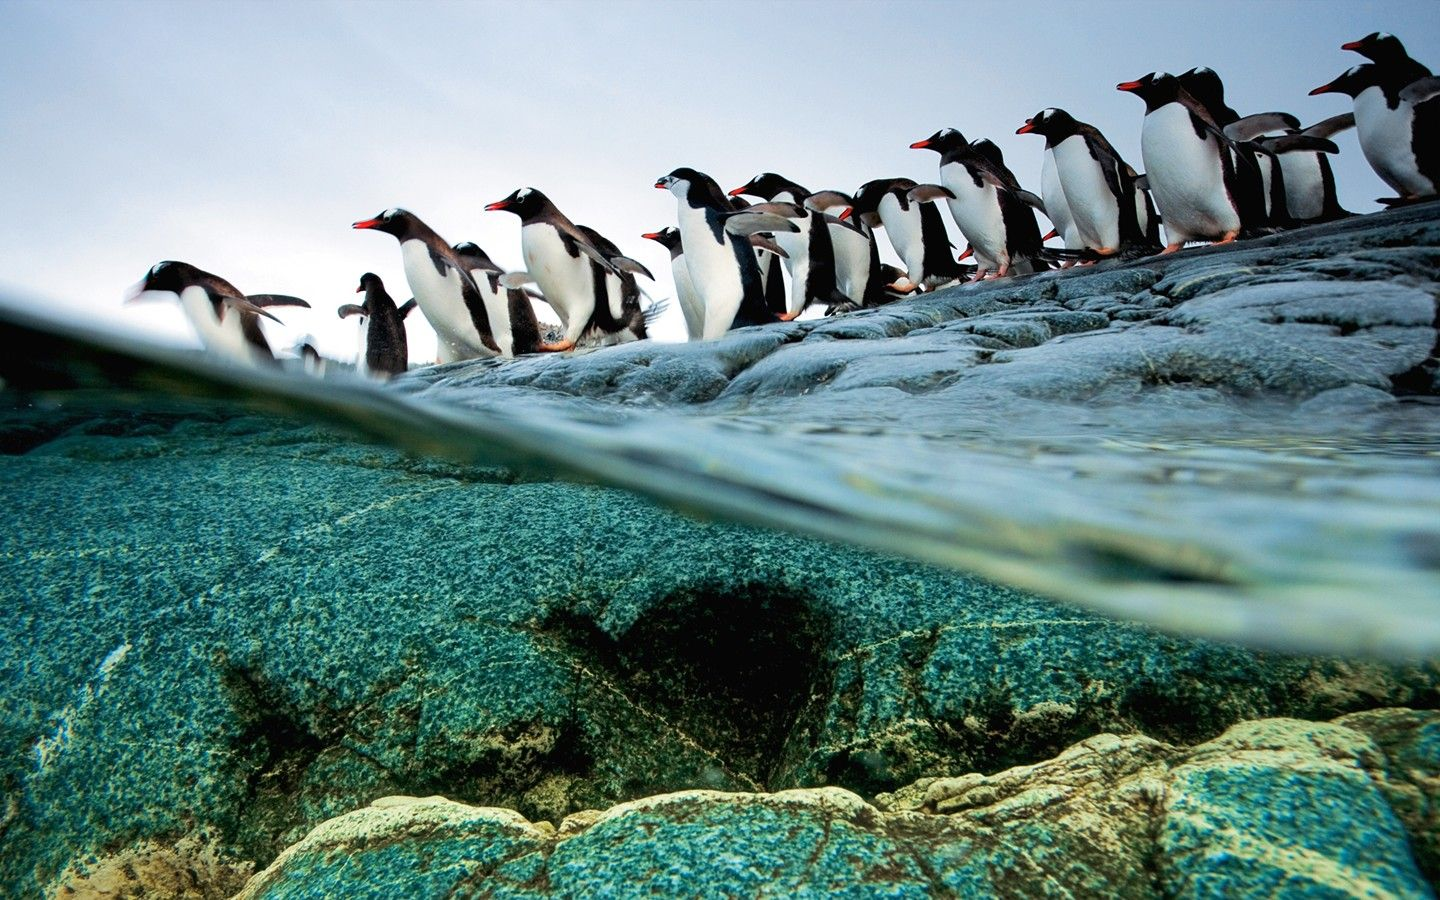 images of cute penguins